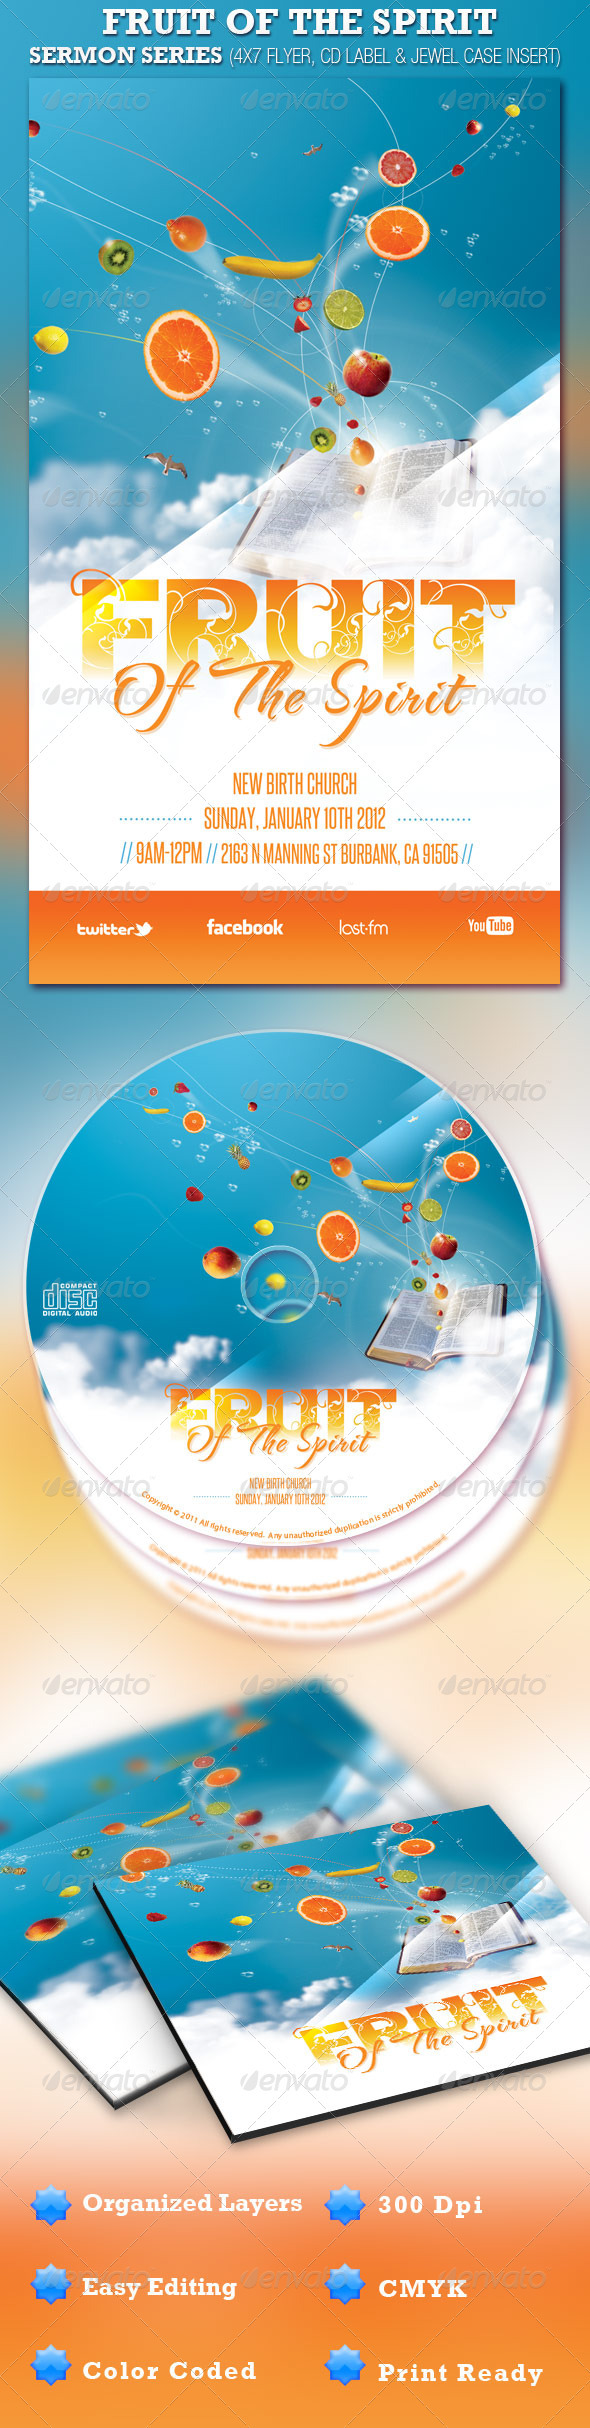 GraphicRiver Fruit of the Spirit Church Flyer and CD Template 918301